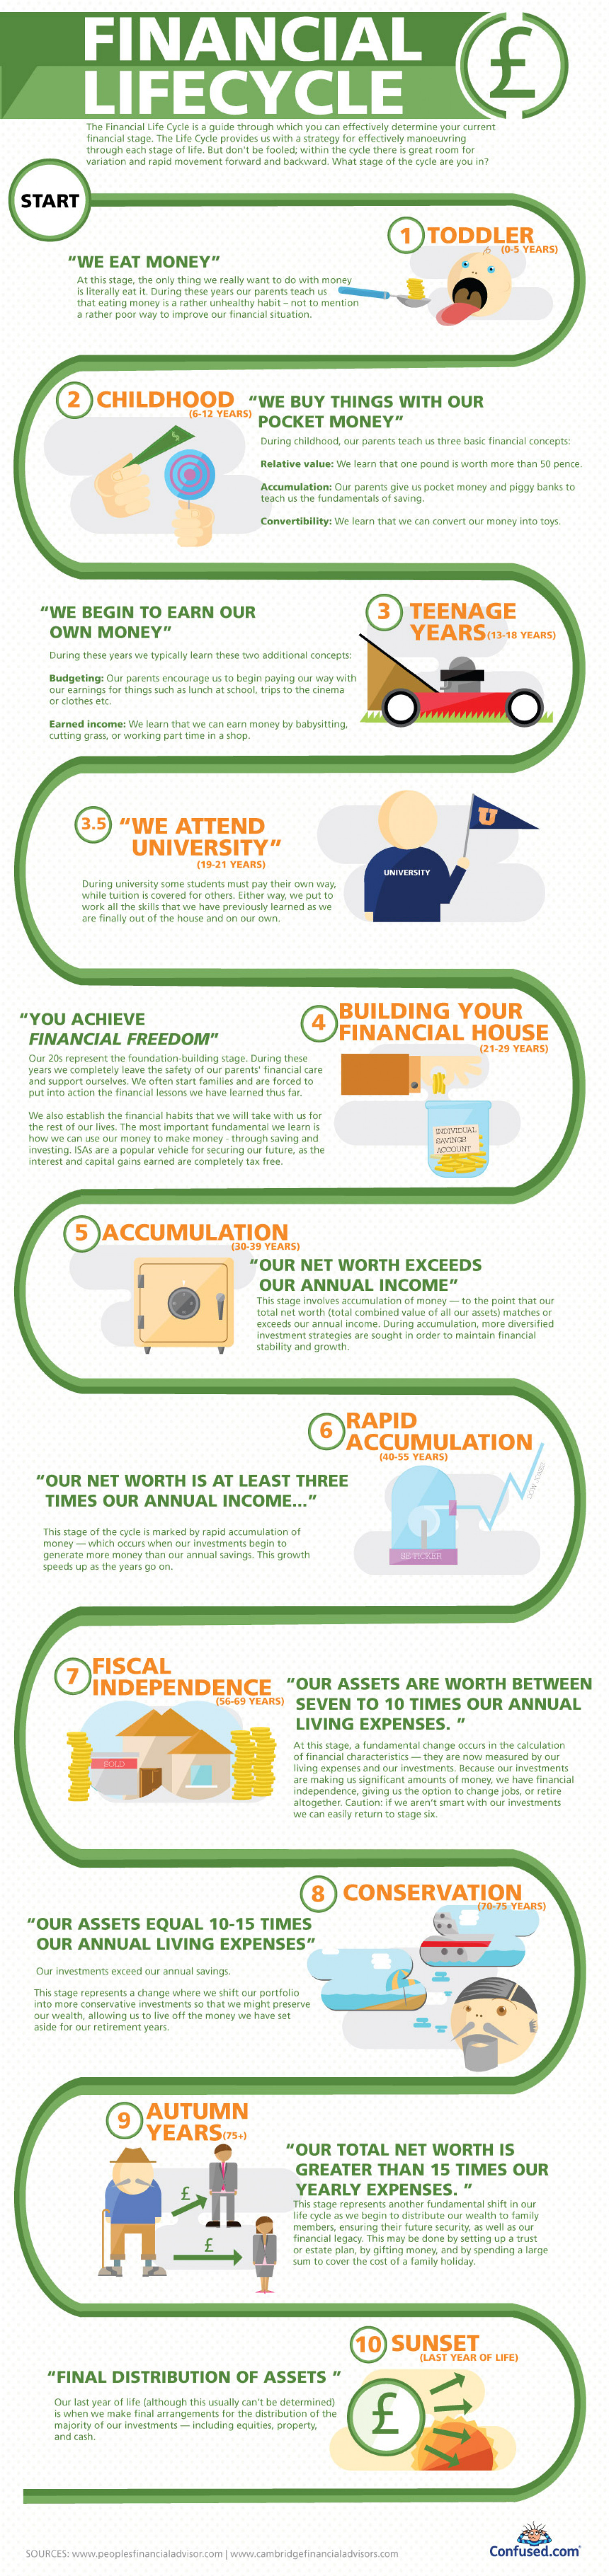 Financial Lifecycle  Infographic